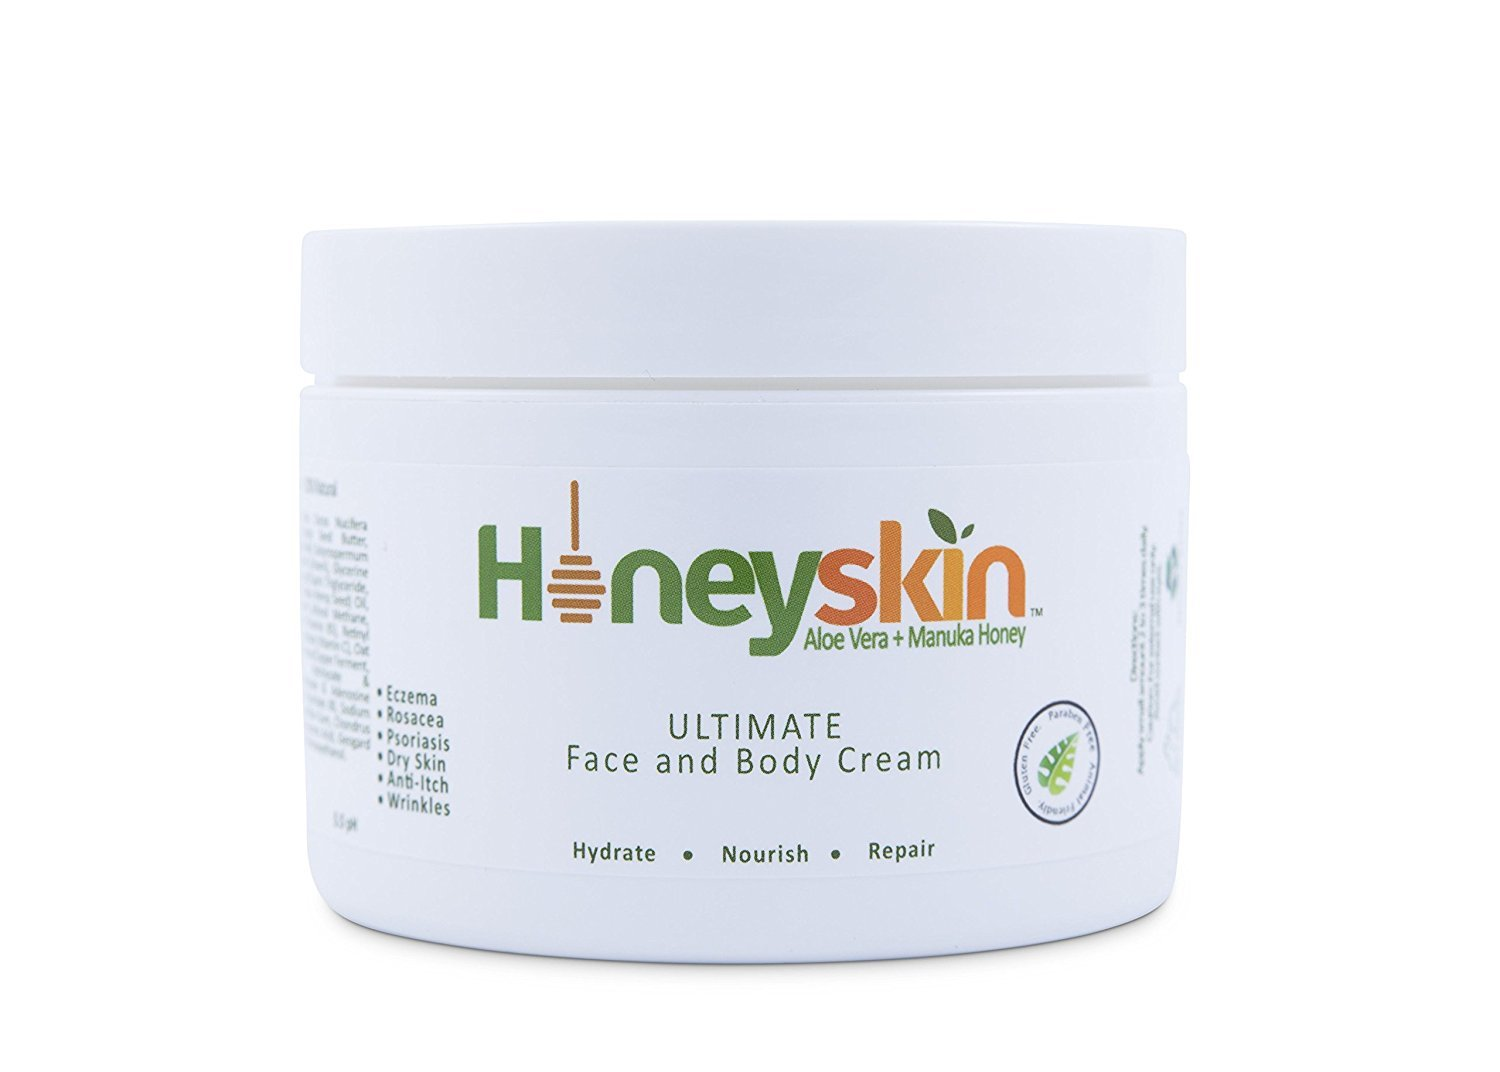 Eczema Repair Cream for Face & Body (8 oz) Soothing, Organic Moisturizer, Rosacea, Psoriasis, Rashes, Dry Skin, Wrinkles, Manuka Honey, Aloe Vera, Coconut Oil, MSM (8 oz) by Honeyskin